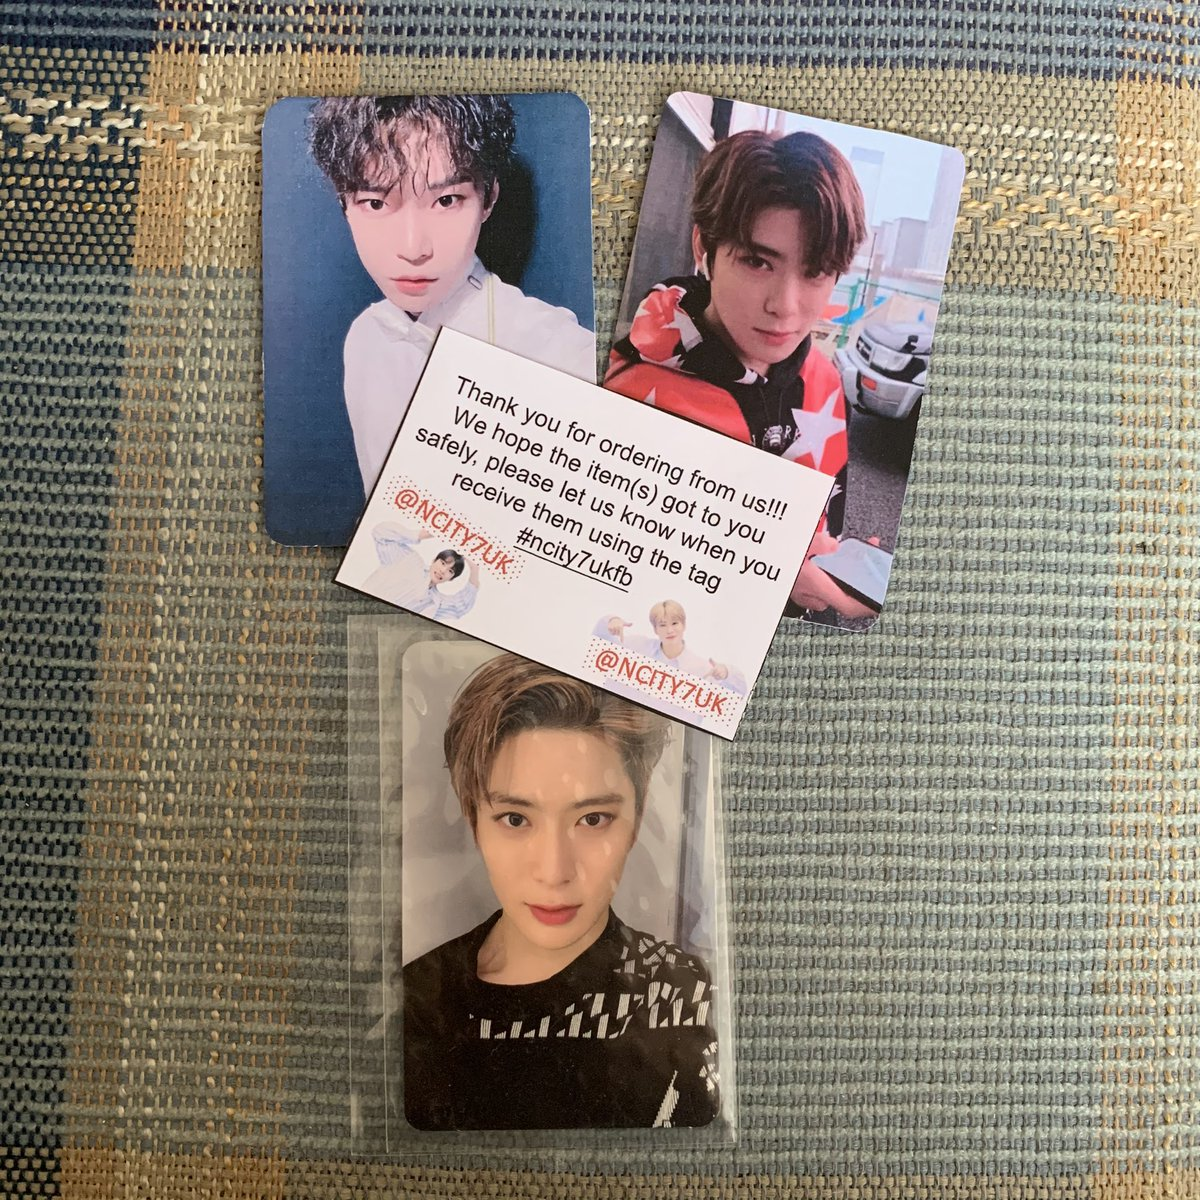 woooooh jaehyun is finally home!!! thank you so much  (also love the dojae freebies T____T) @ncity7uk #ncity7ukfb <br>http://pic.twitter.com/b7195enQuz